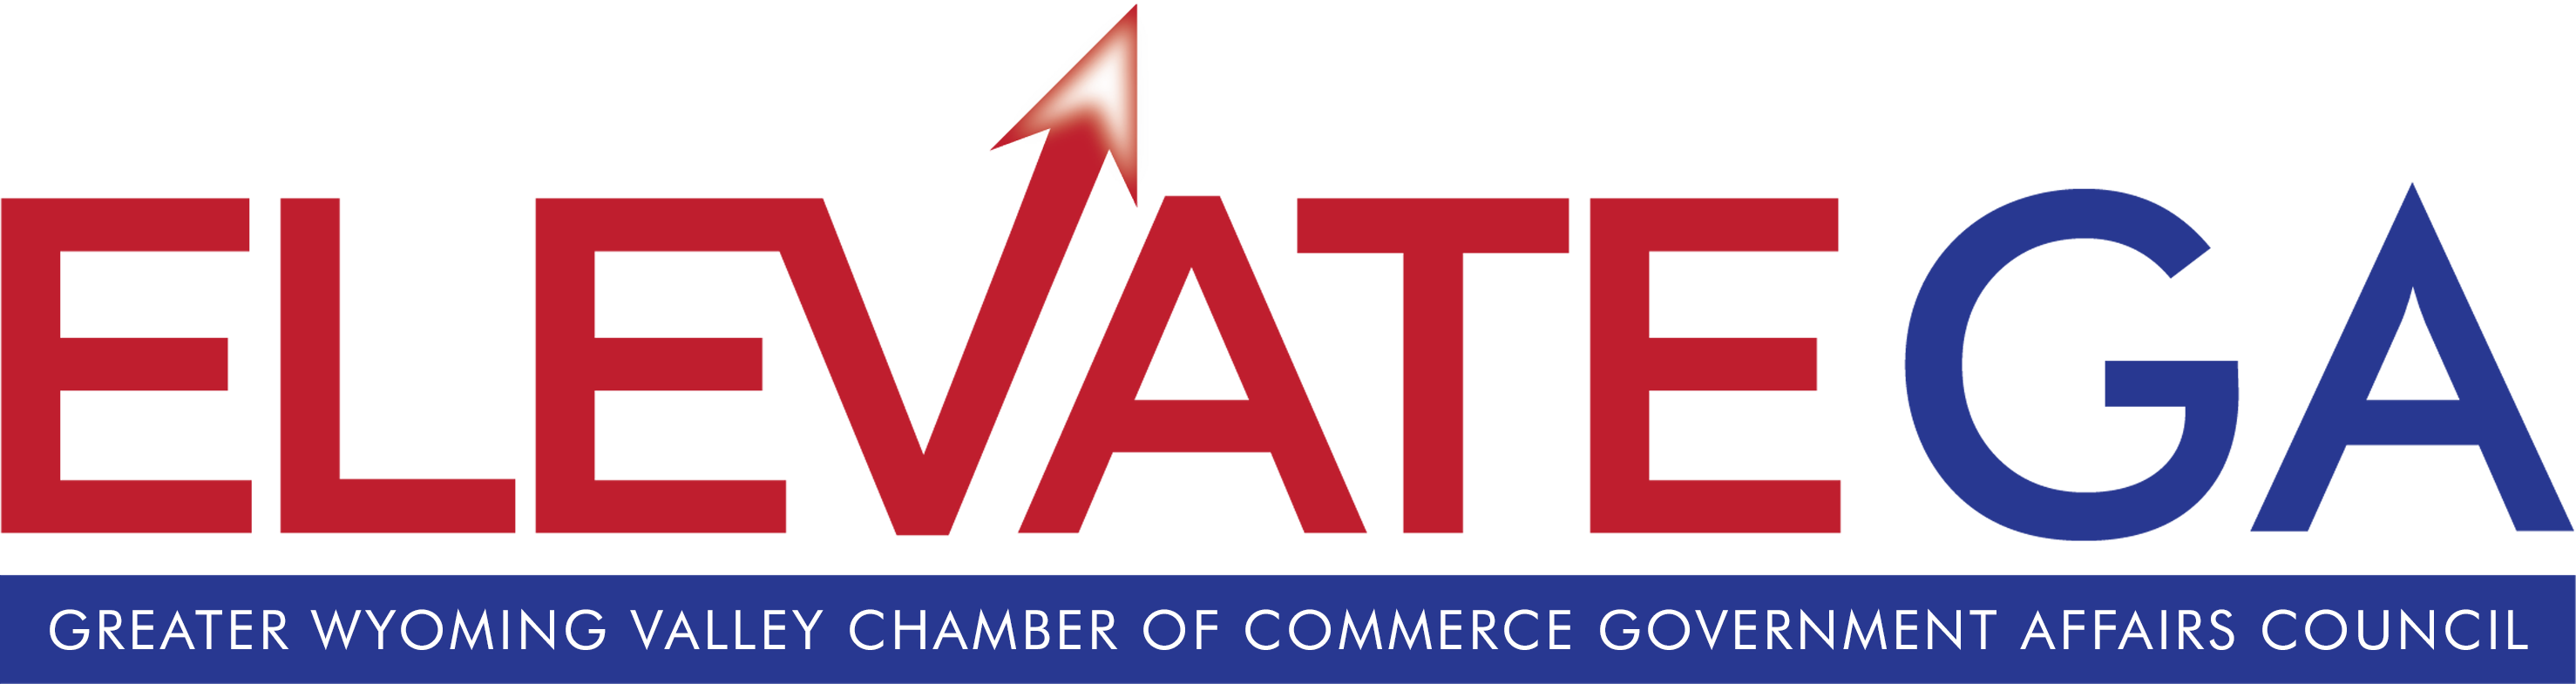 Advocacy Alert: Wyoming Valley Chamber Signs UC Work Search Letter